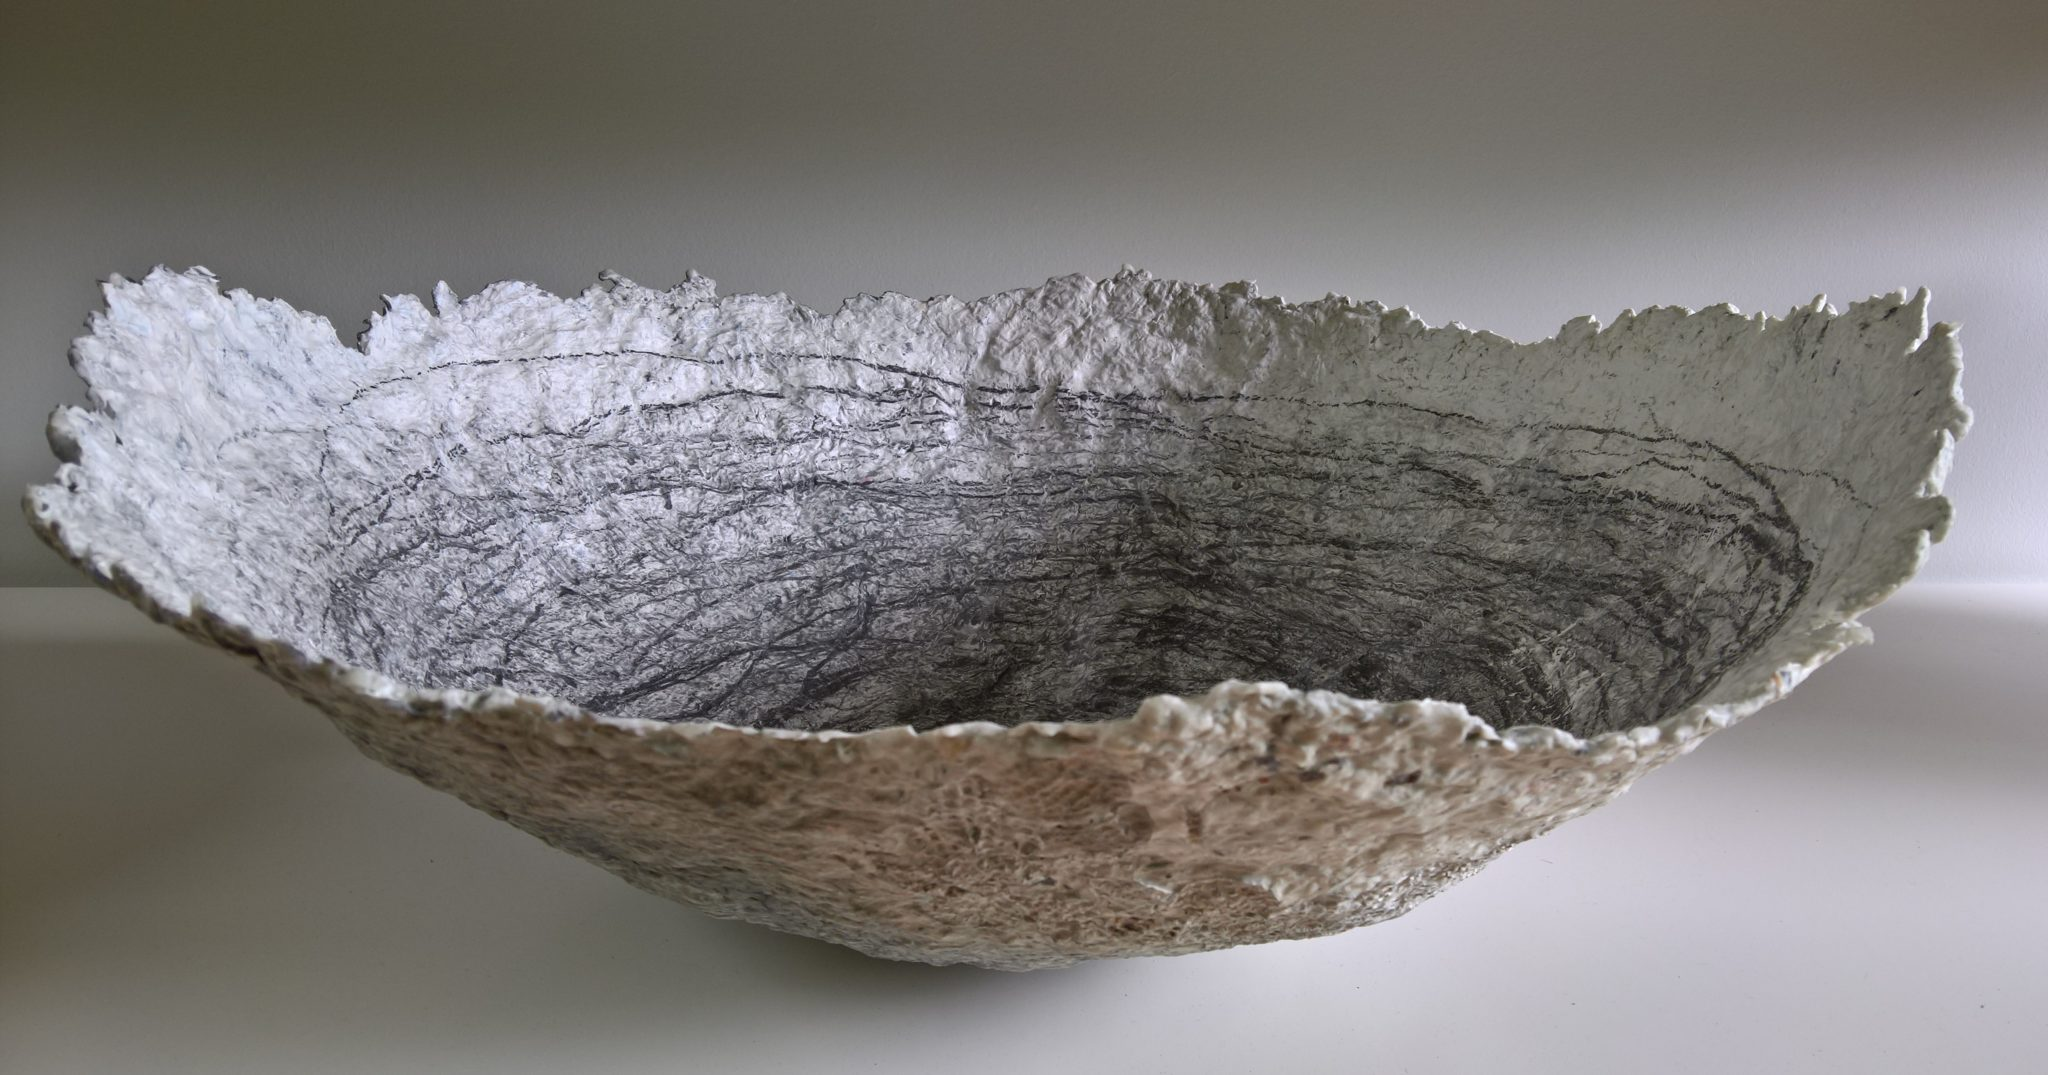 Image 3 pheonix large crater and charcoal bowl